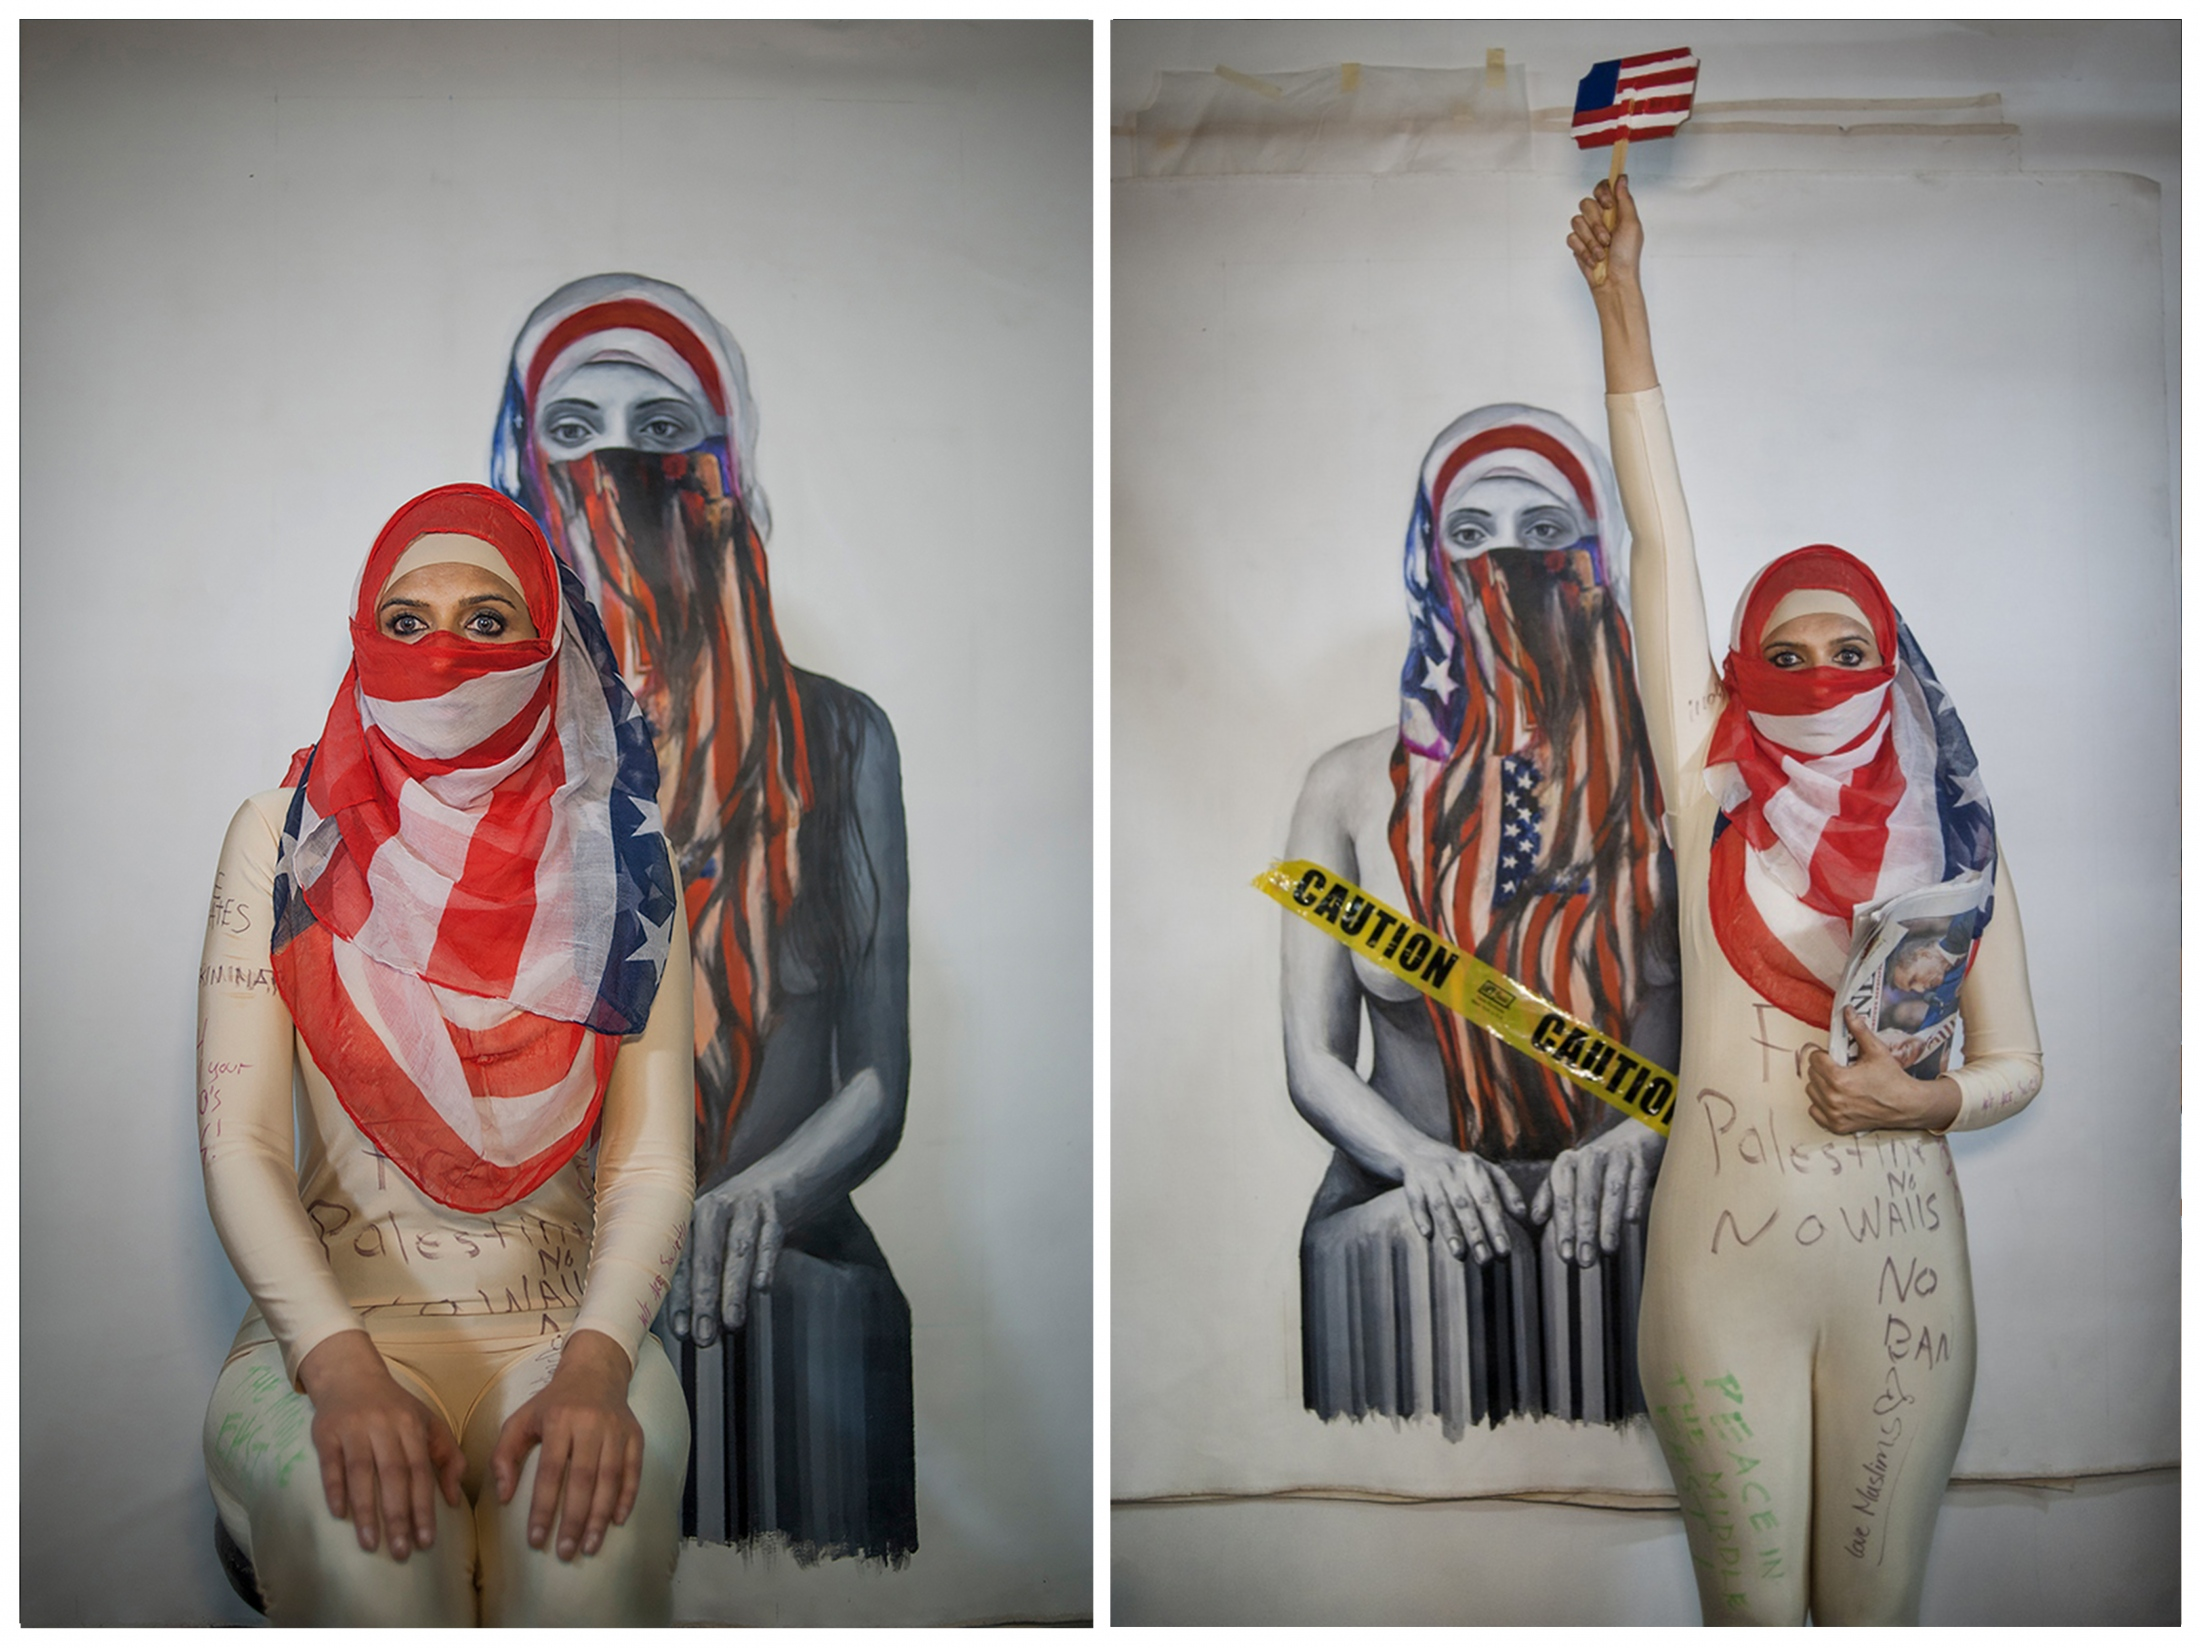 "Qinza Najm is a Pakistani American painter known for bodies of work such as ""Islamic Graffiti"" and large scale paintings of Muslim women wearing hijabs. Her work has been exhibited at Dubai's Christie's Art, Miami Art Basel, and Sikka Art Dubai. On Valentine's Day 2017, Najm held a fashion show at White Box NYC gallery responding to President Trump's travel ban. She and models from each of the seven Muslim nations affected walked the runway posing as Statues of Liberty in hijabs. Najm said she is still extremely disturbed and trying to ""accept reality"" in U.S. politics. But she also said there is a positive: more people are getting united. ""At the fashion show, people couldn't stop clapping -- they were crying. I was here during September 11th, and everyone had said 'Muslims are bad.' Here, they had so much empathy. When they were writing comments on the bodysuits, they were writing on the souls of Muslim people, saying 'We are standing next to you.'"""